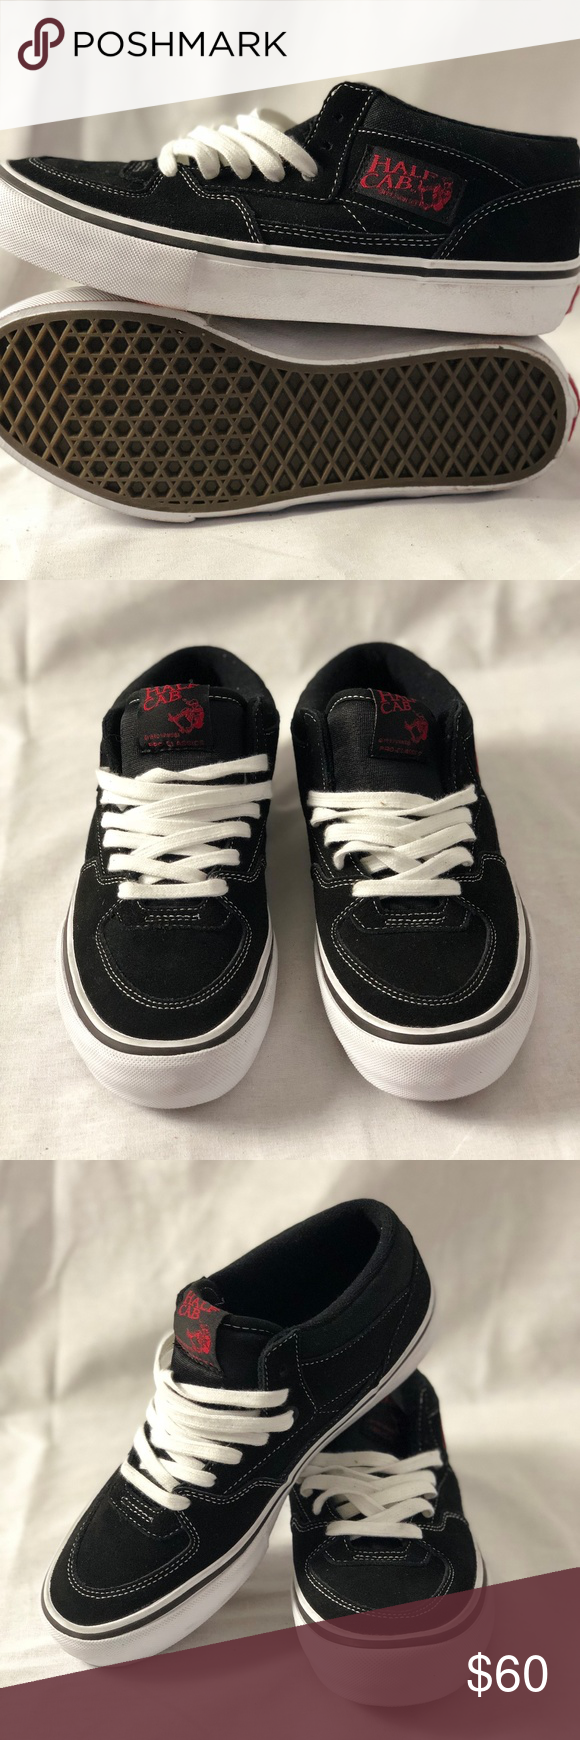 ee8b4bc567 Vans Mens Half Cab Pro Sneakers Black White Red Vans Mens Half Cab Pro  Sneakers Black White Red Men s 7.5 Condition  New without box.